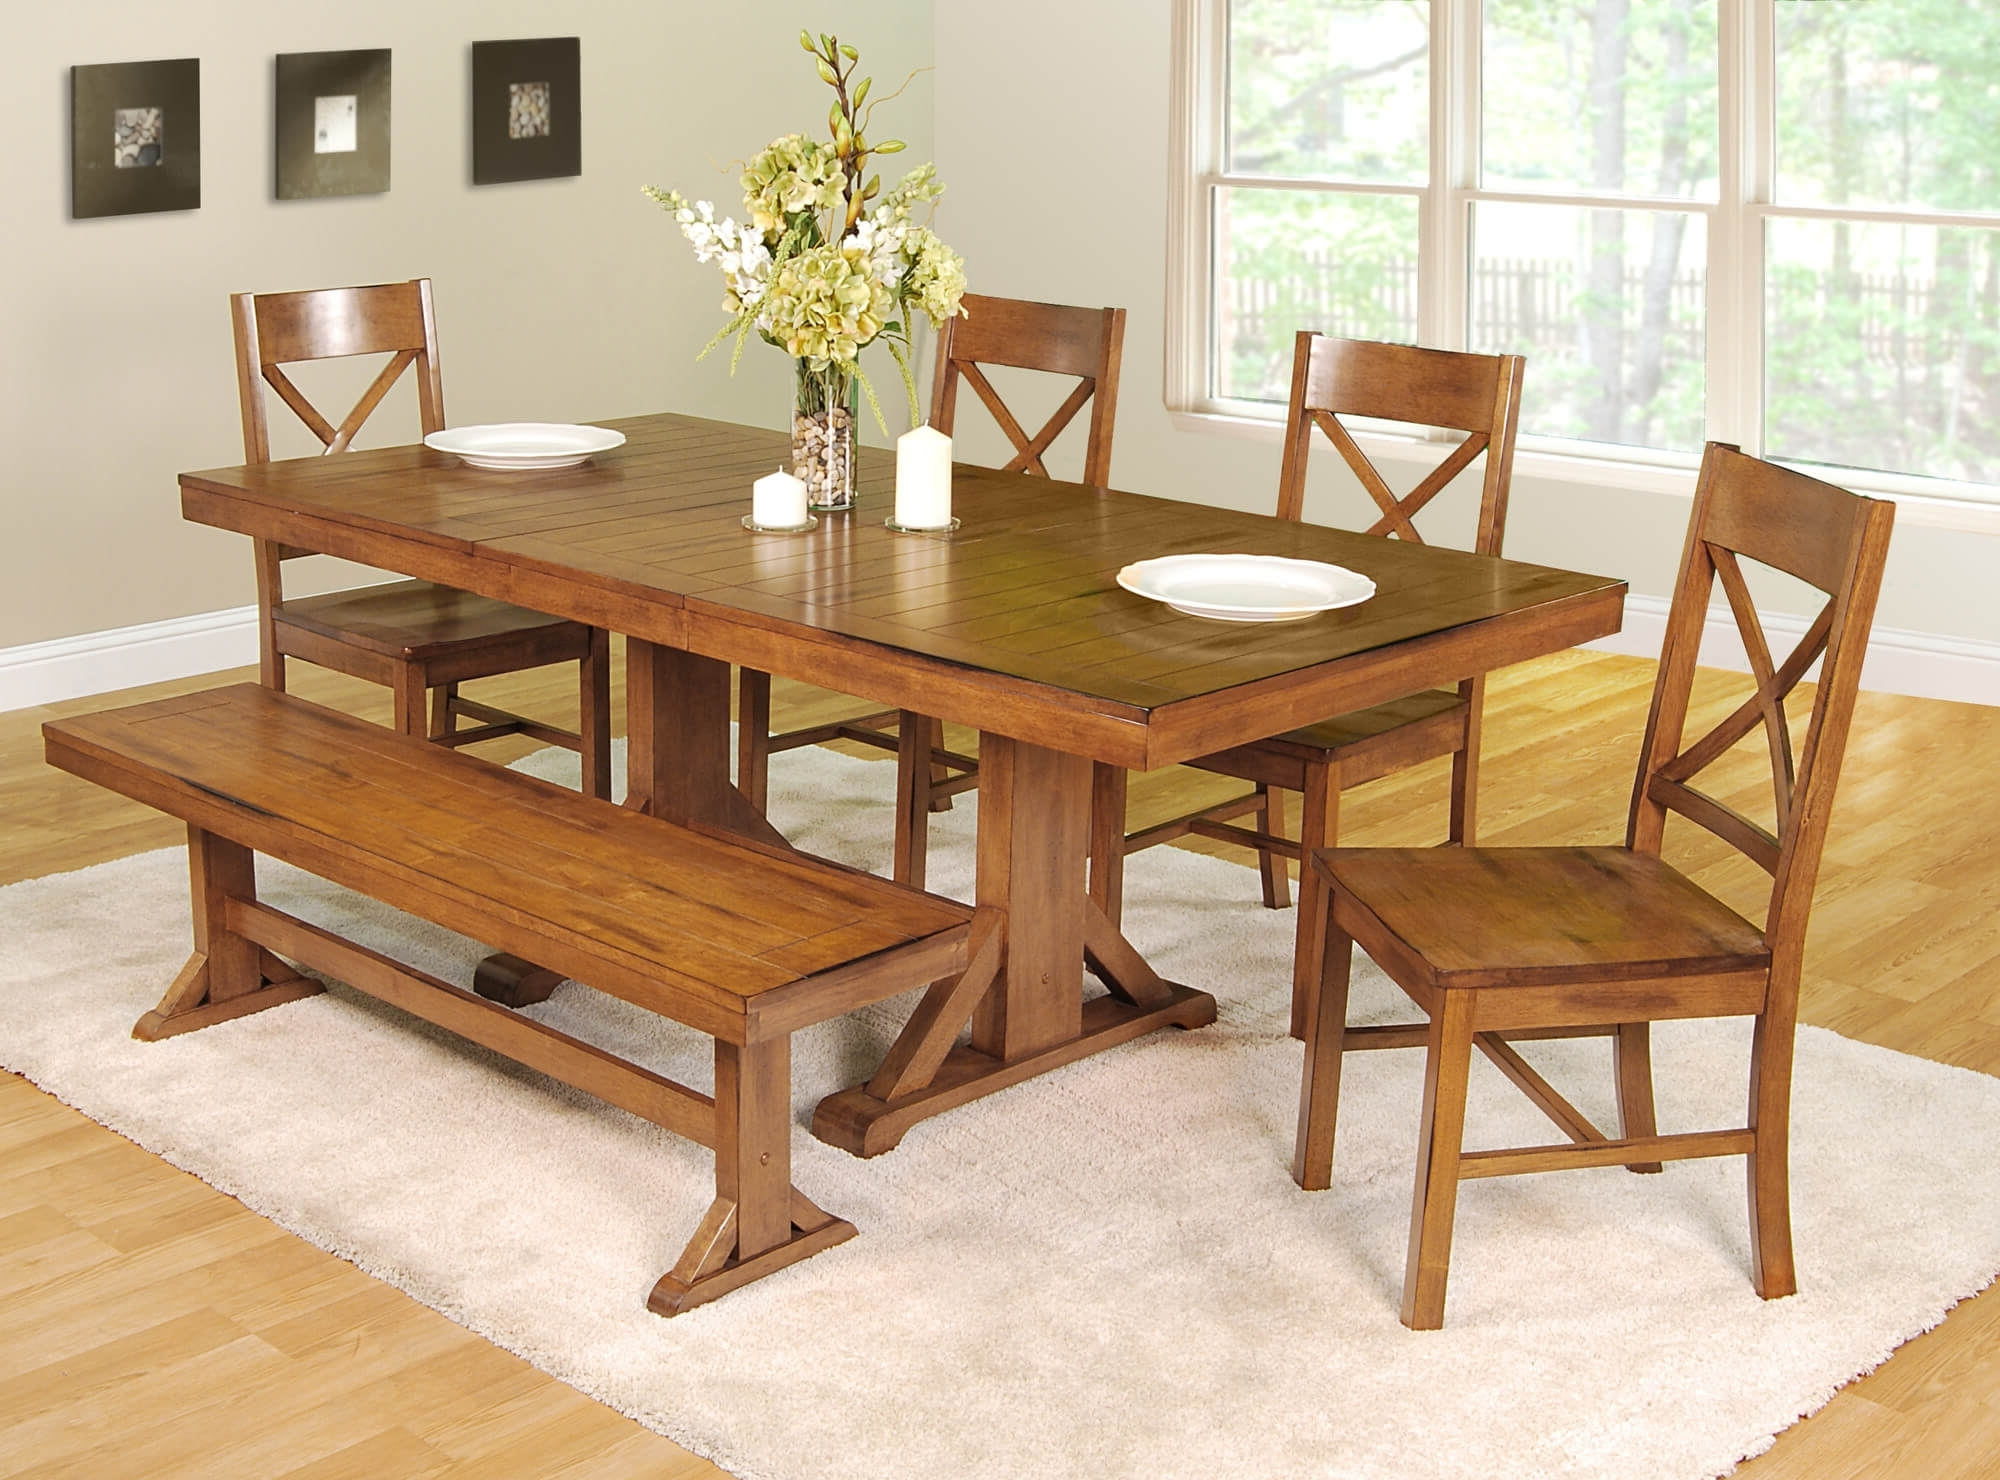 26 Dining Room Sets (Big And Small) With Bench Seating (2018) In Well Liked Dining Tables Seats  (View 22 of 25)